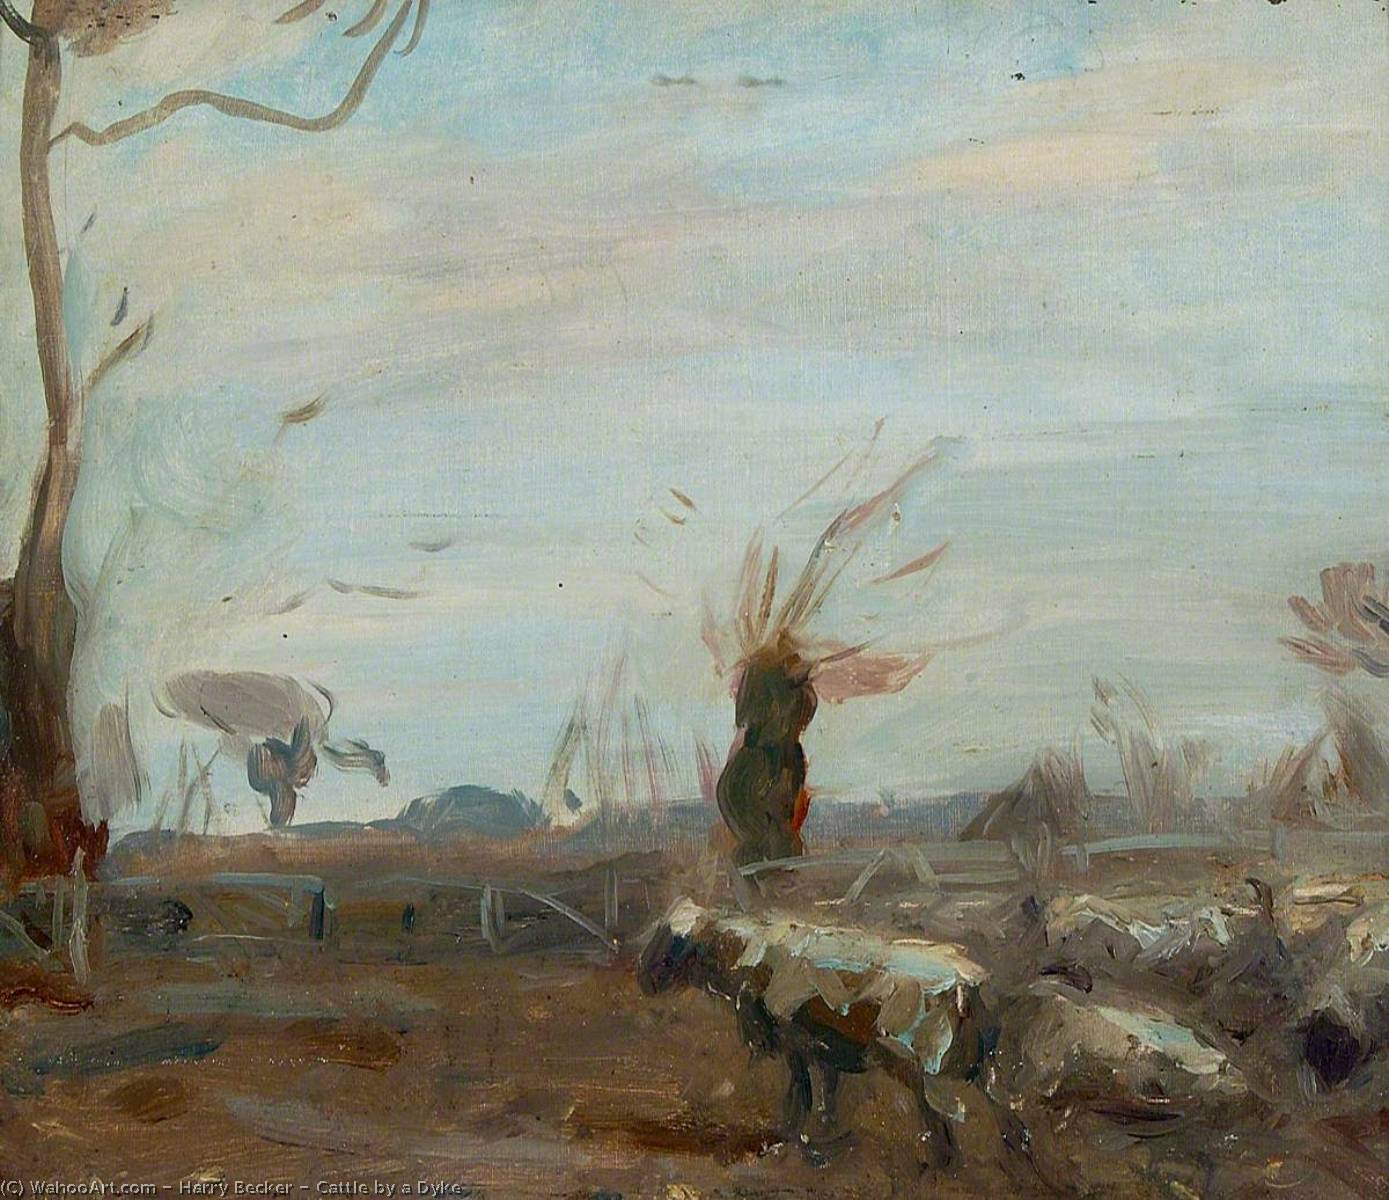 Order Paintings Reproductions | Cattle by a Dyke, 1928 by Harry Becker | WahooArt.com